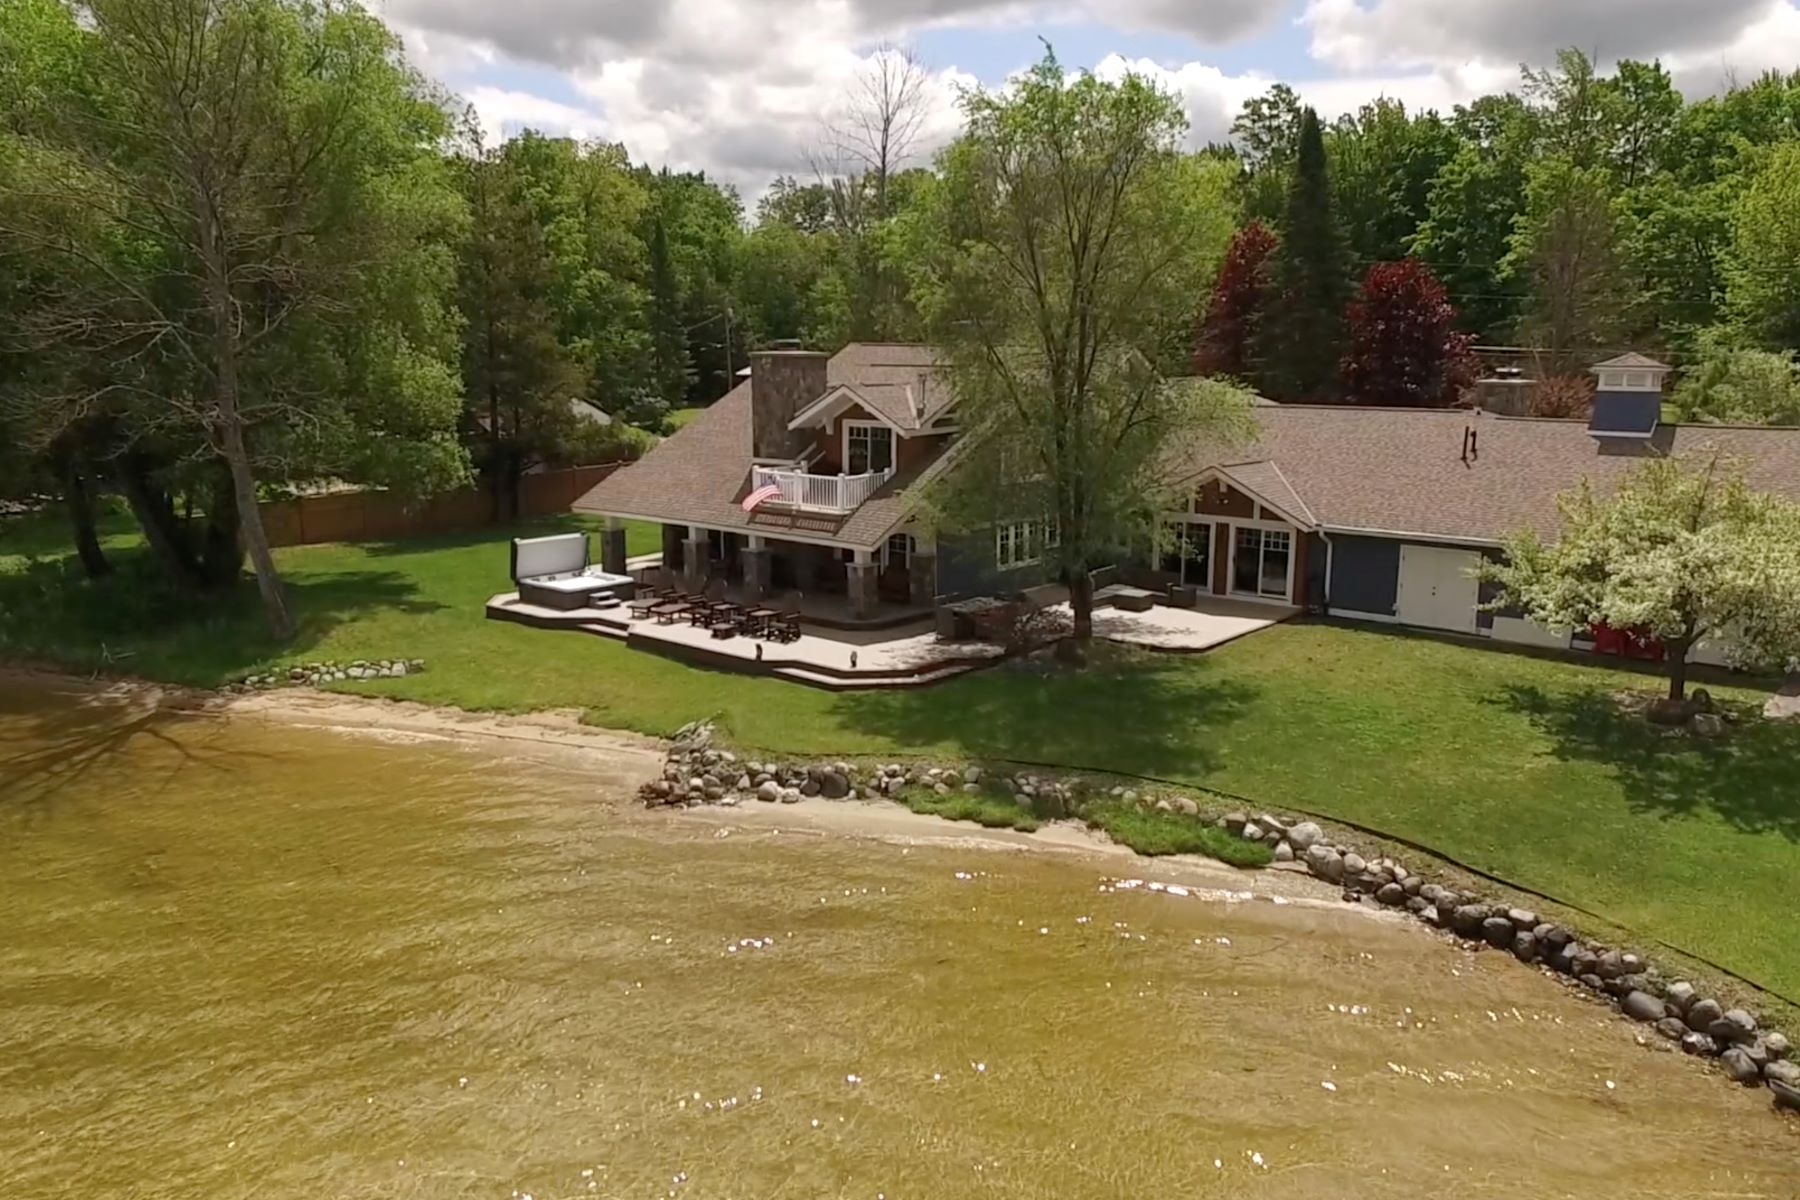 Single Family Homes for Sale at Waterfront Home on Pickerel Lake 9633 Trails End Road Petoskey, Michigan 49770 United States